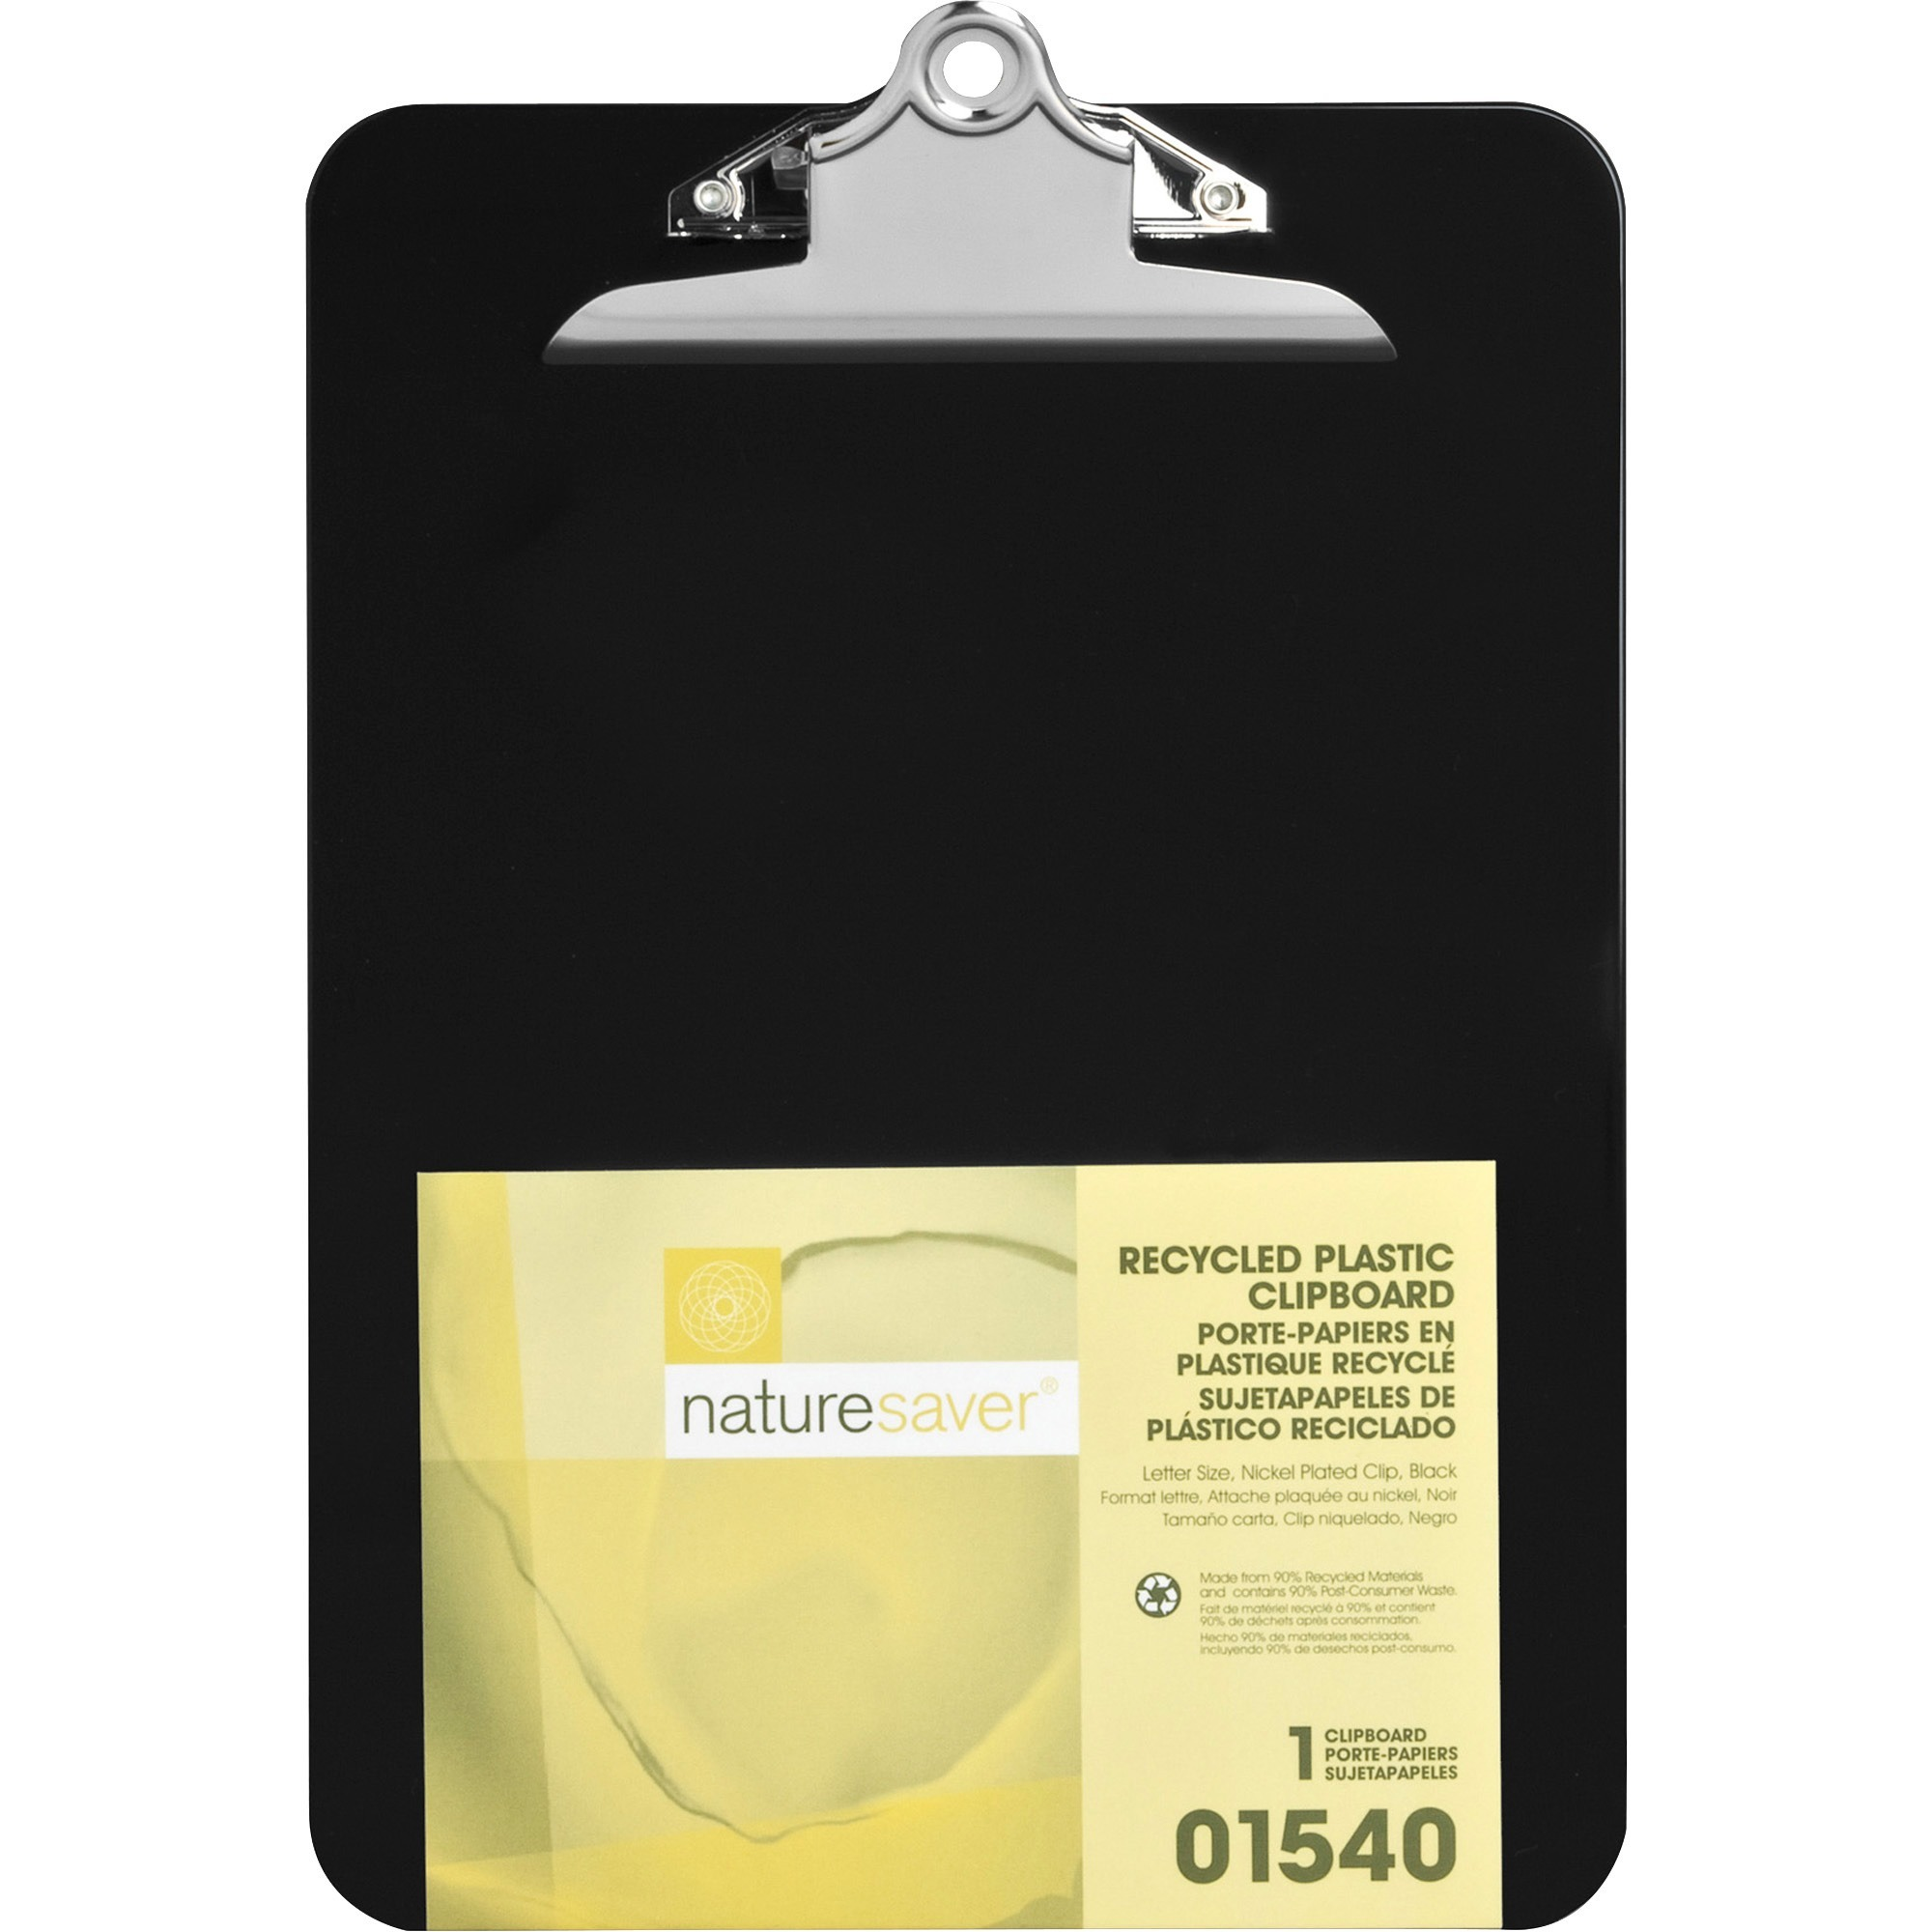 Nature Saver, NAT01540, Recycled Plastic Clipboards, 1 Each, Black